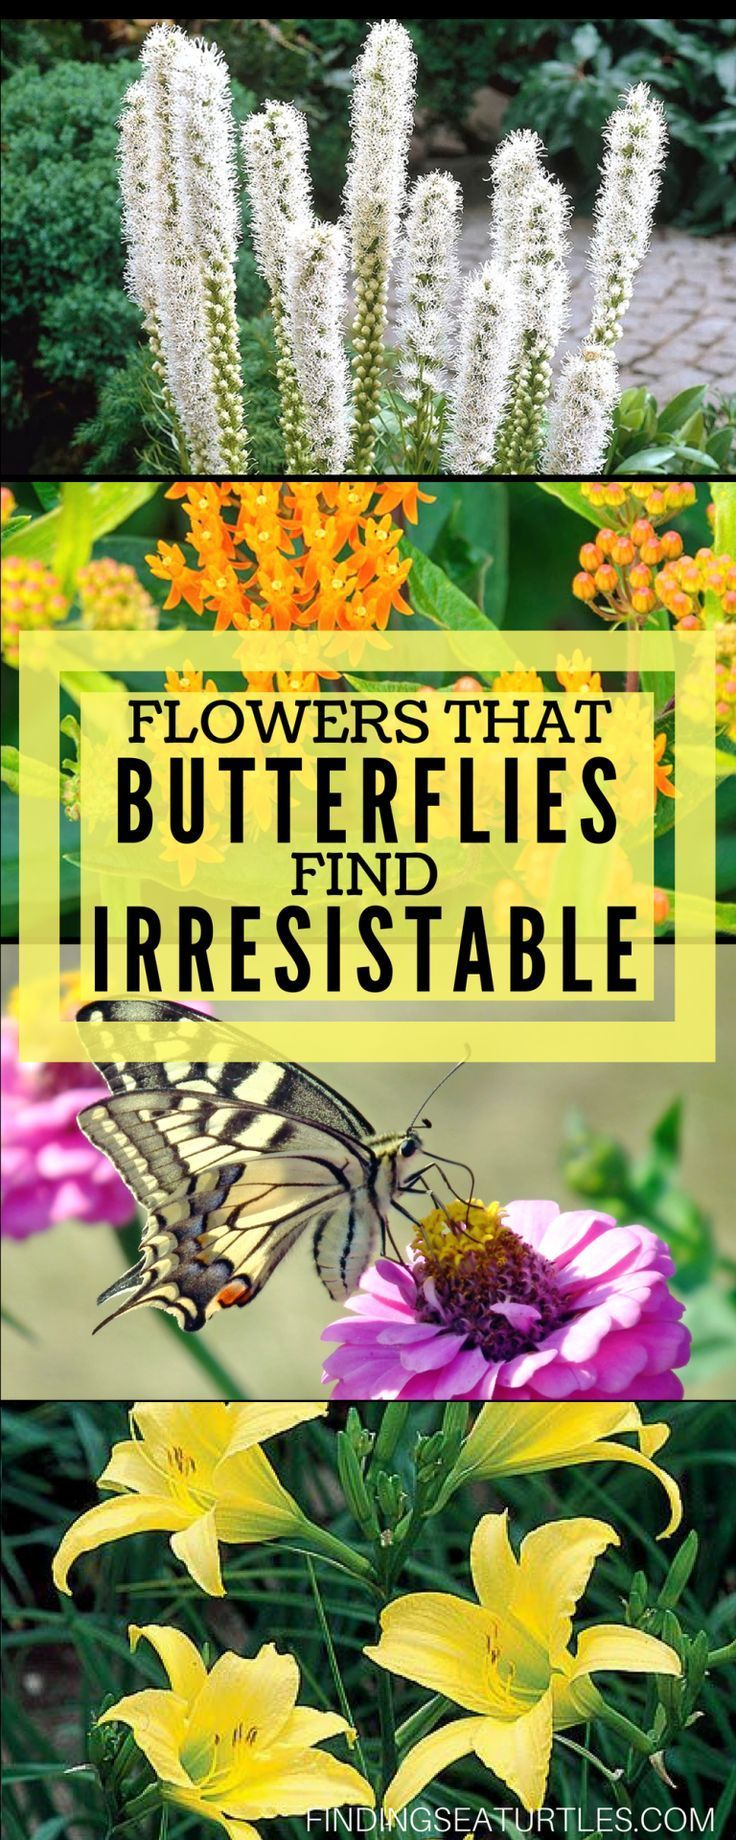 12 Perennials That Butterflies Find Irresistible -